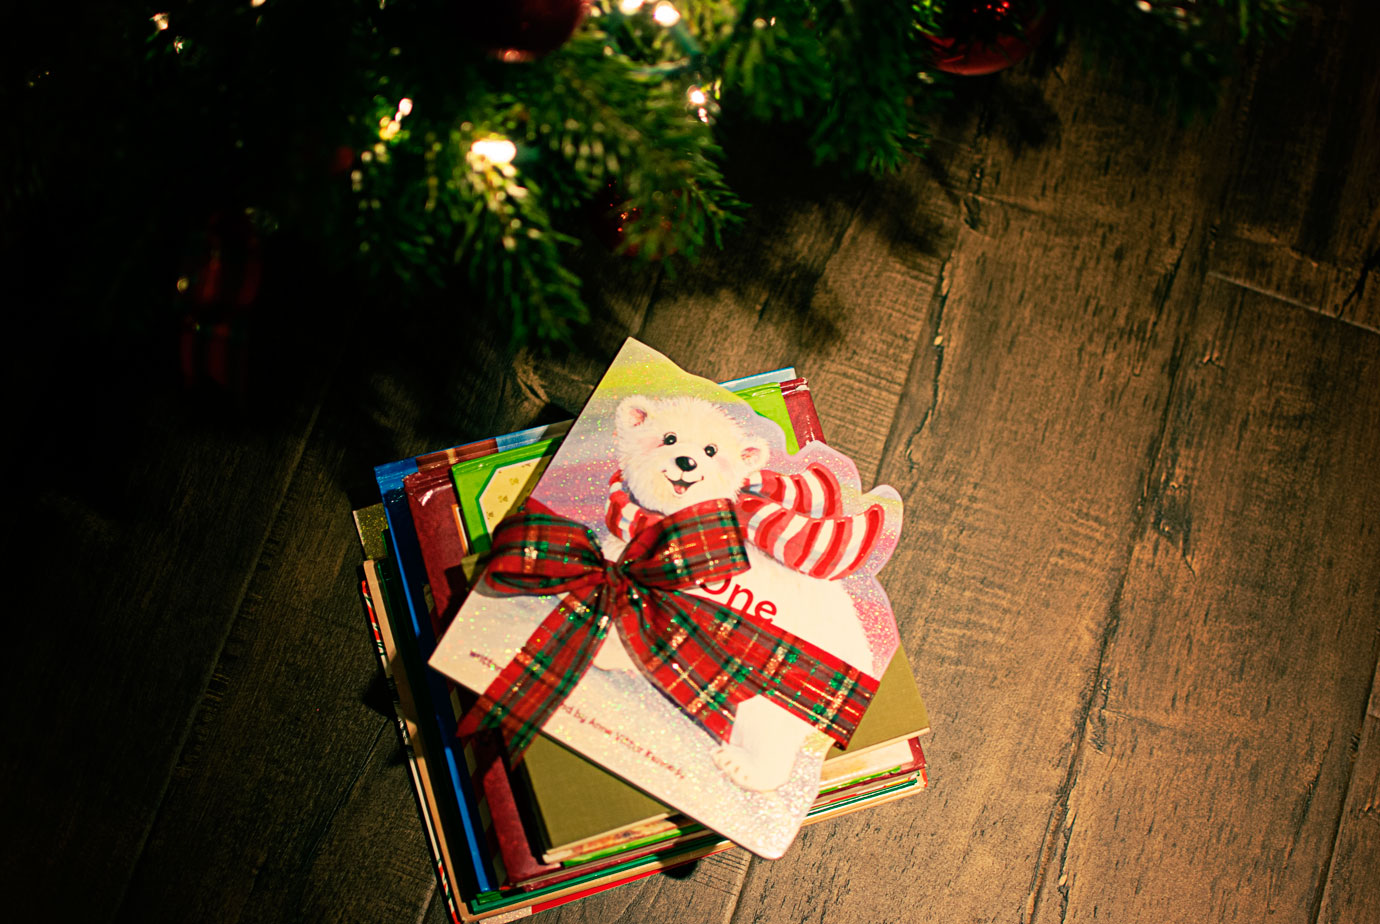 One Christmas Bear Book on a Stack of Books Under The Tree #OneChristmasBear #ChristmasBook #ChristmasTraditions